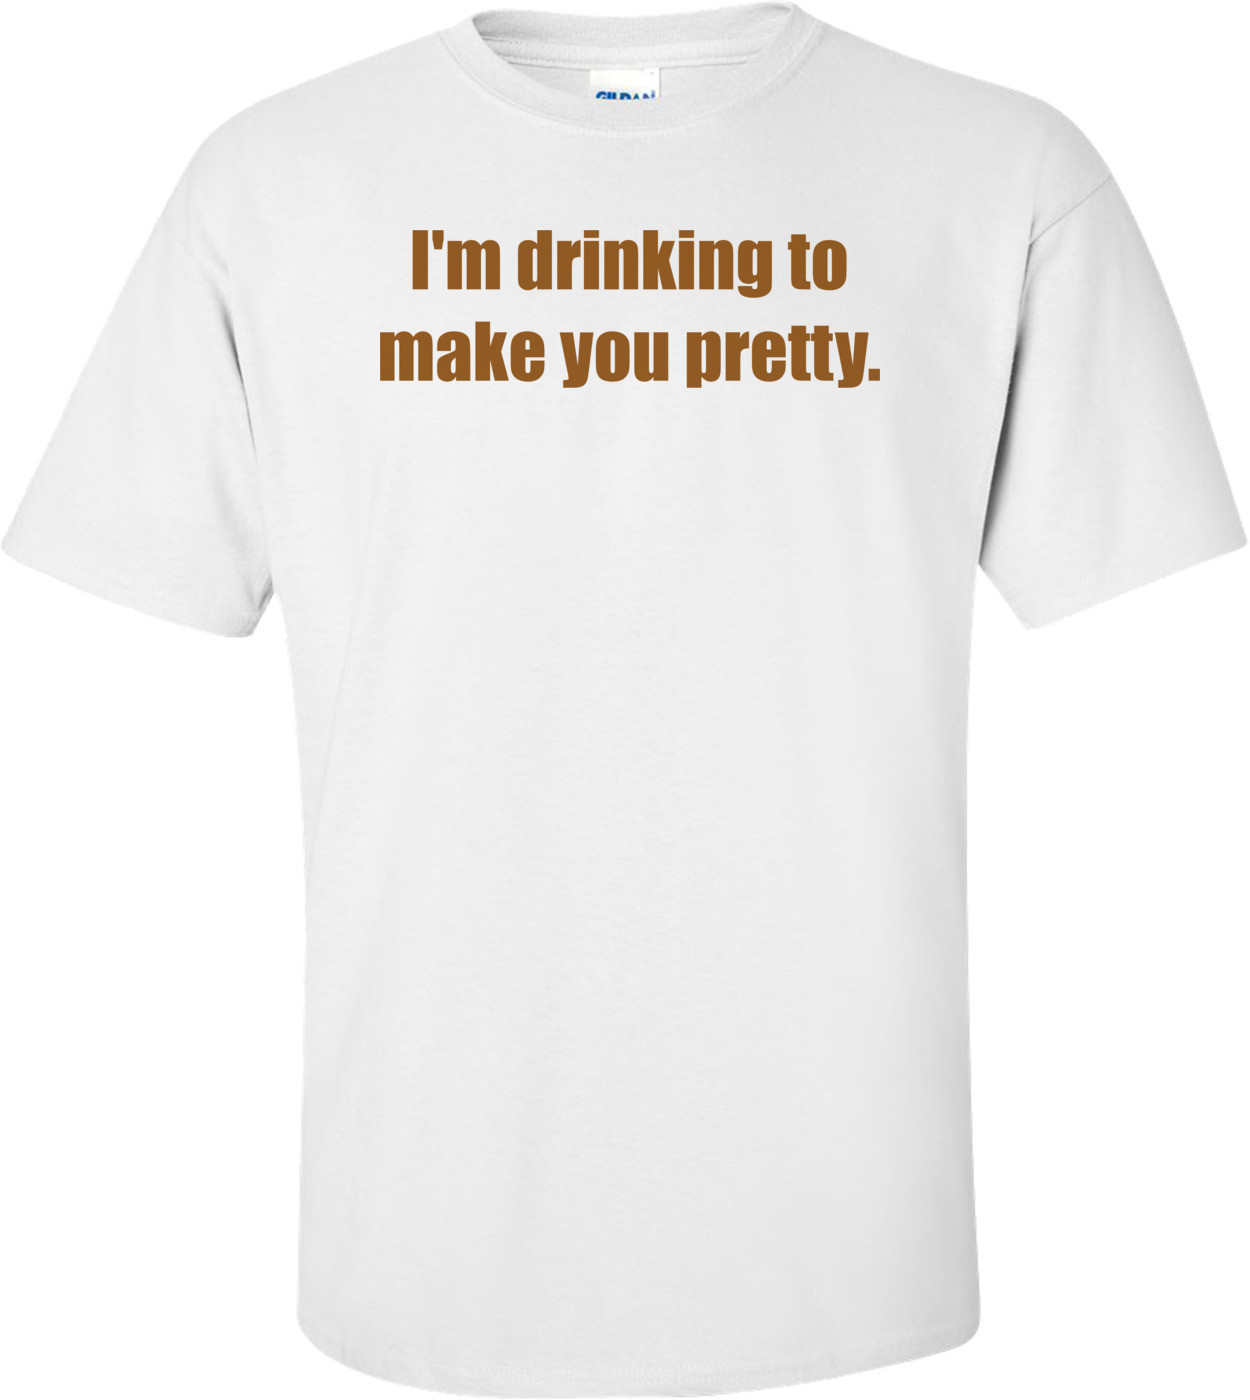 I'm drinking to make you pretty. Shirt